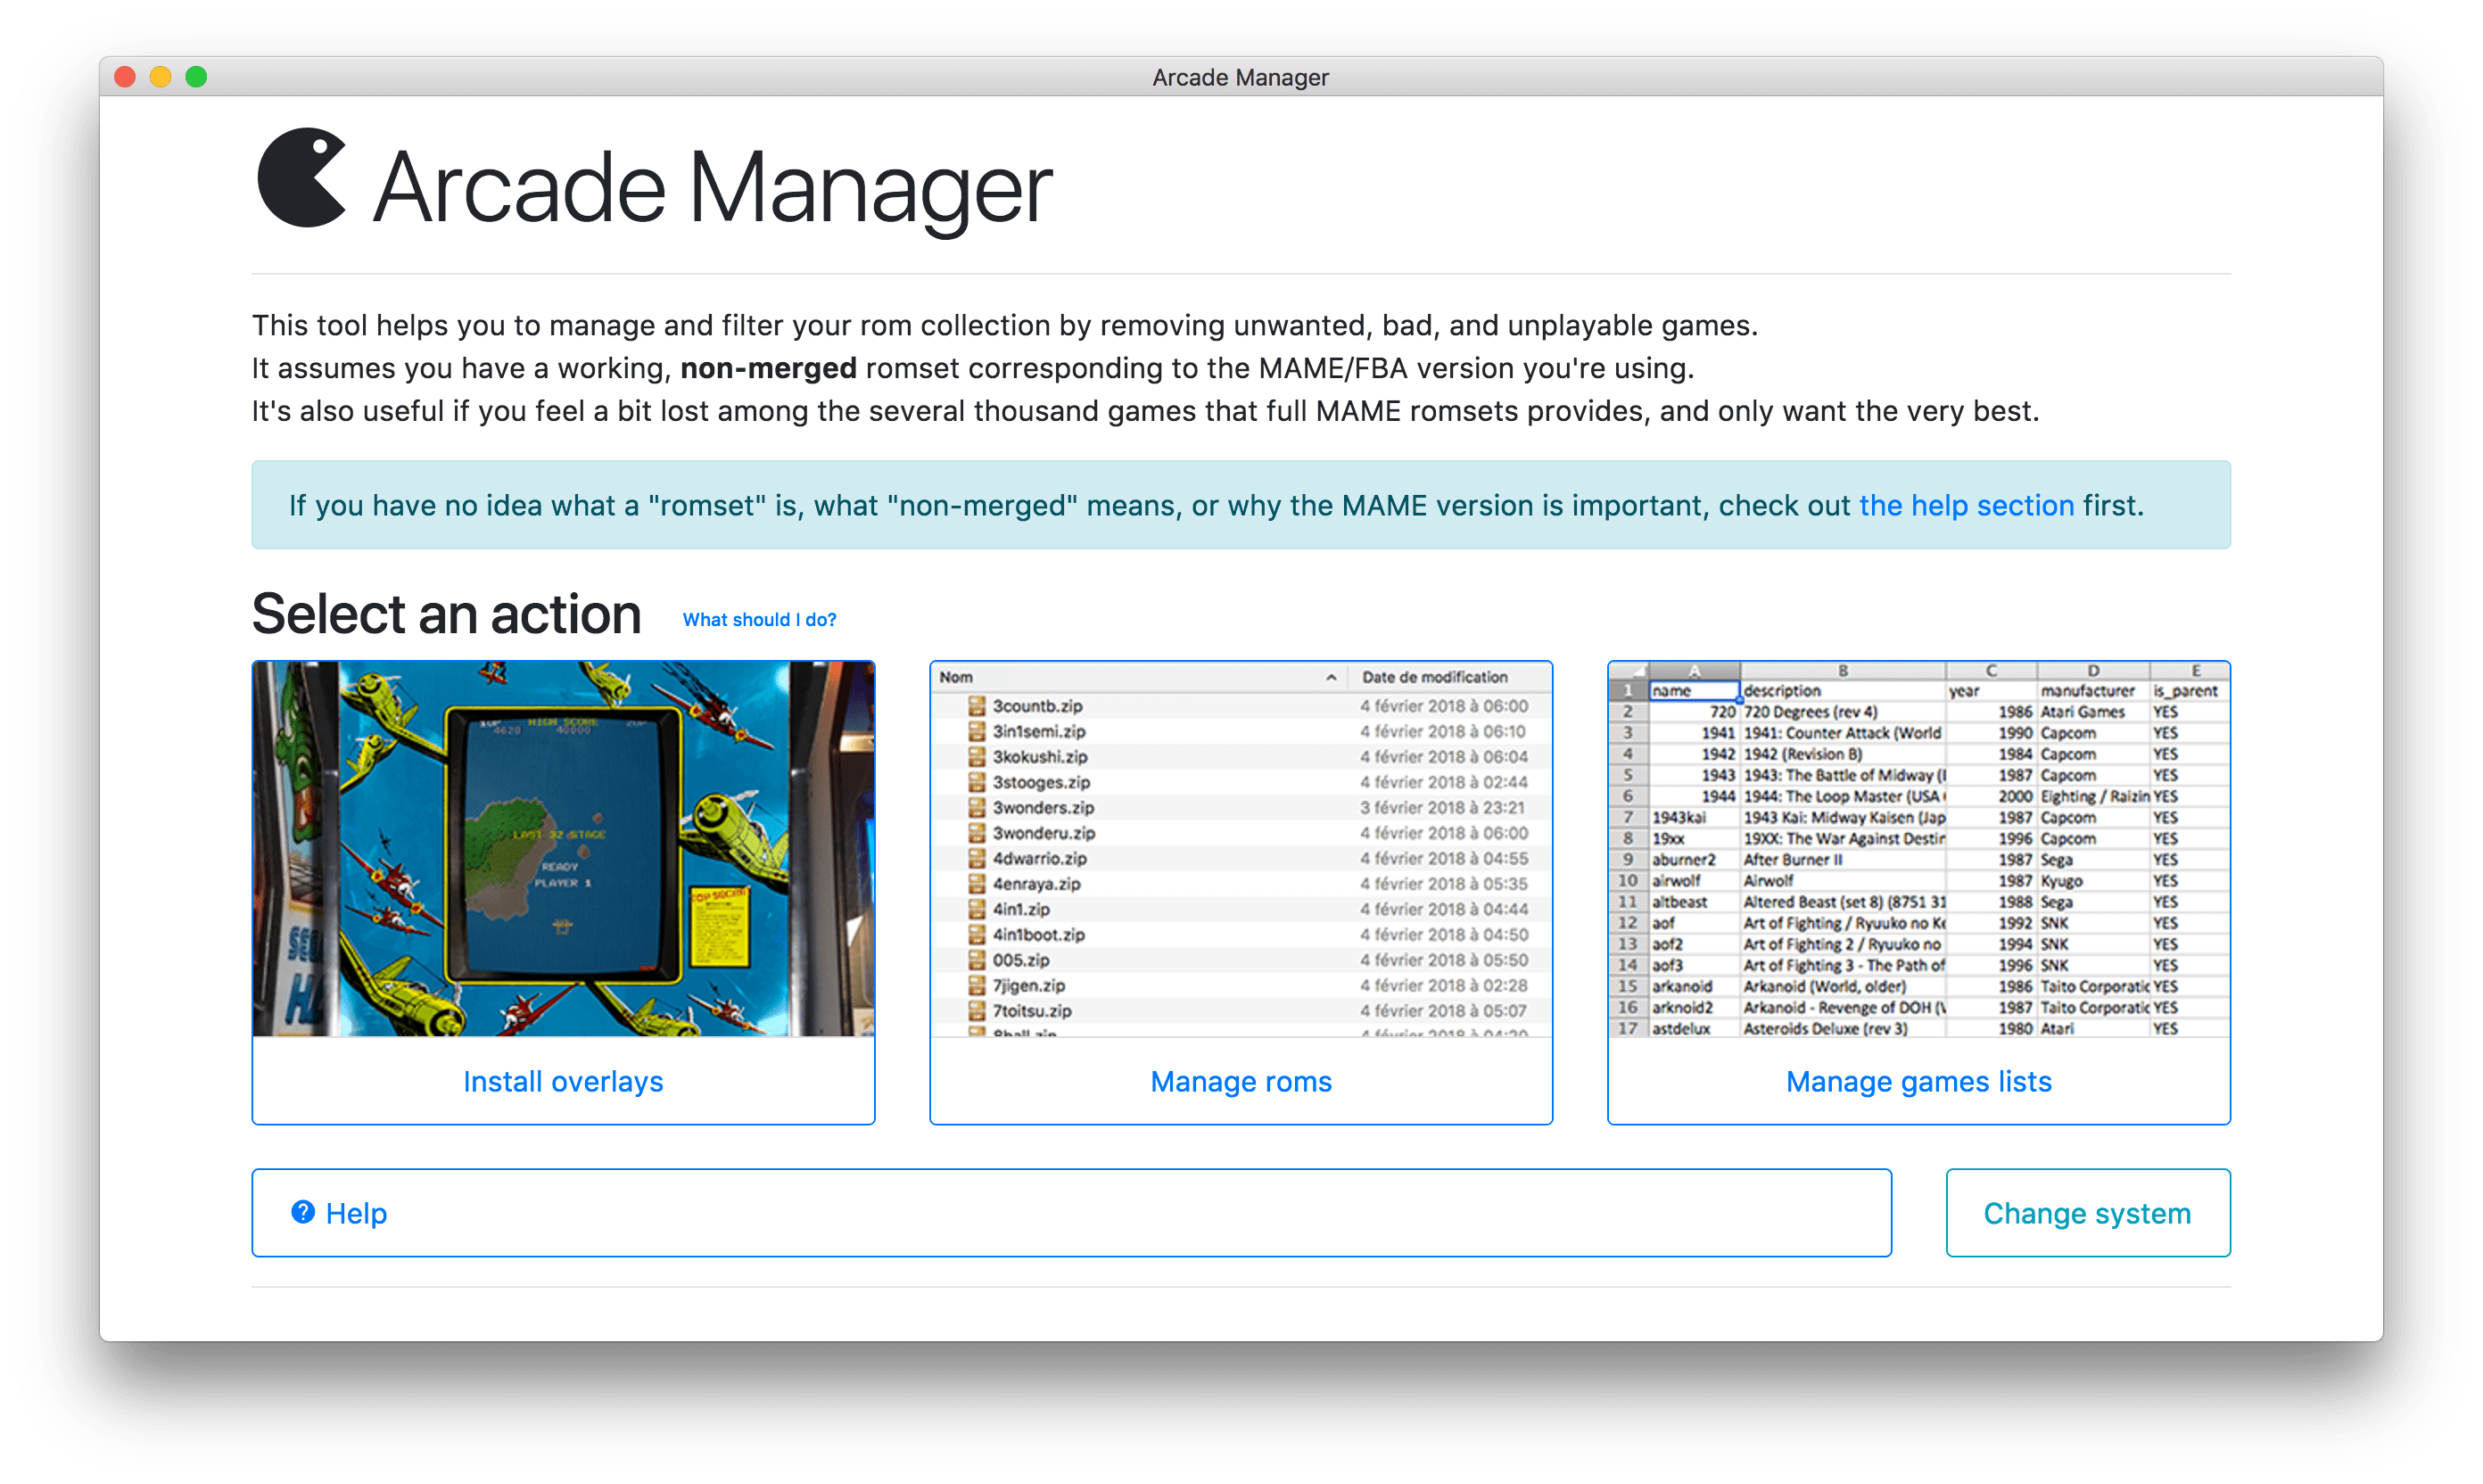 Arcade Manager: install overlays and manage roms in a user